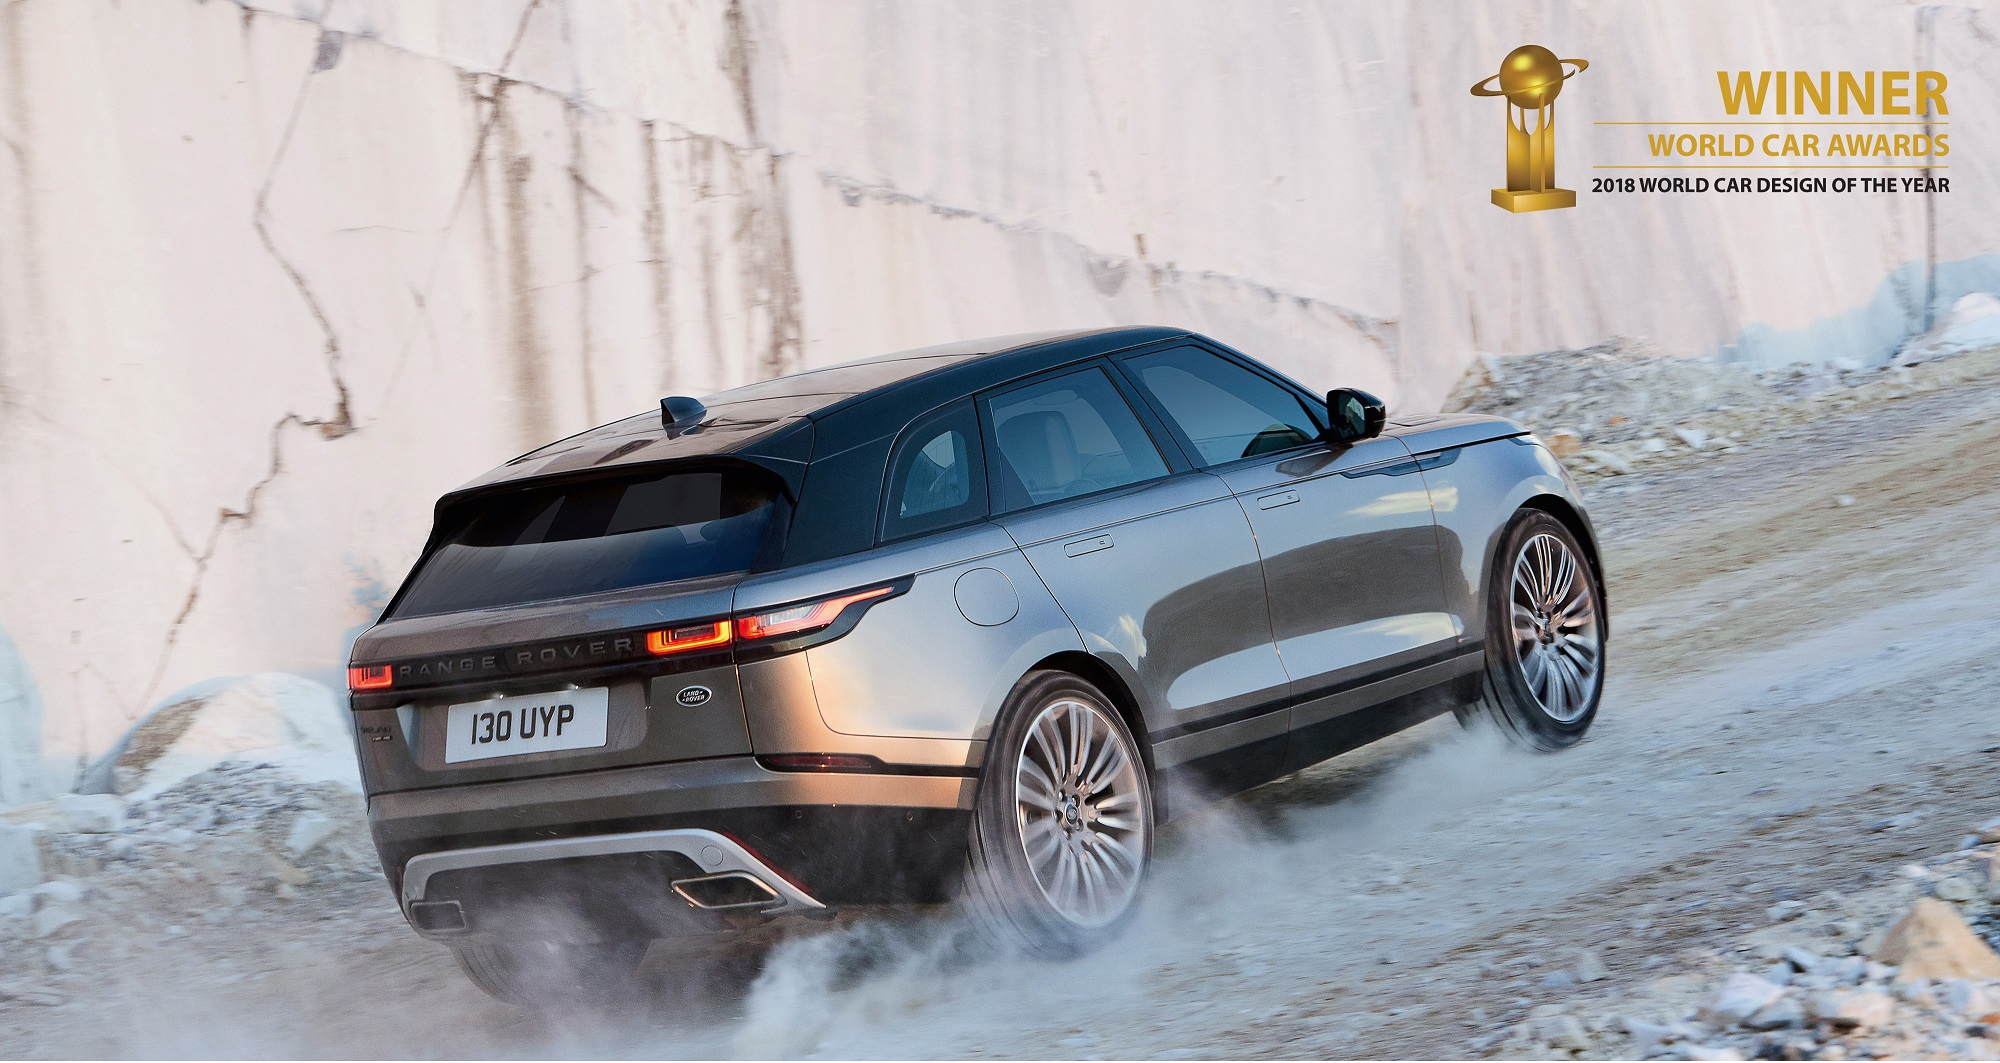 jaguarforums.com Range Rover Velar World Car Award